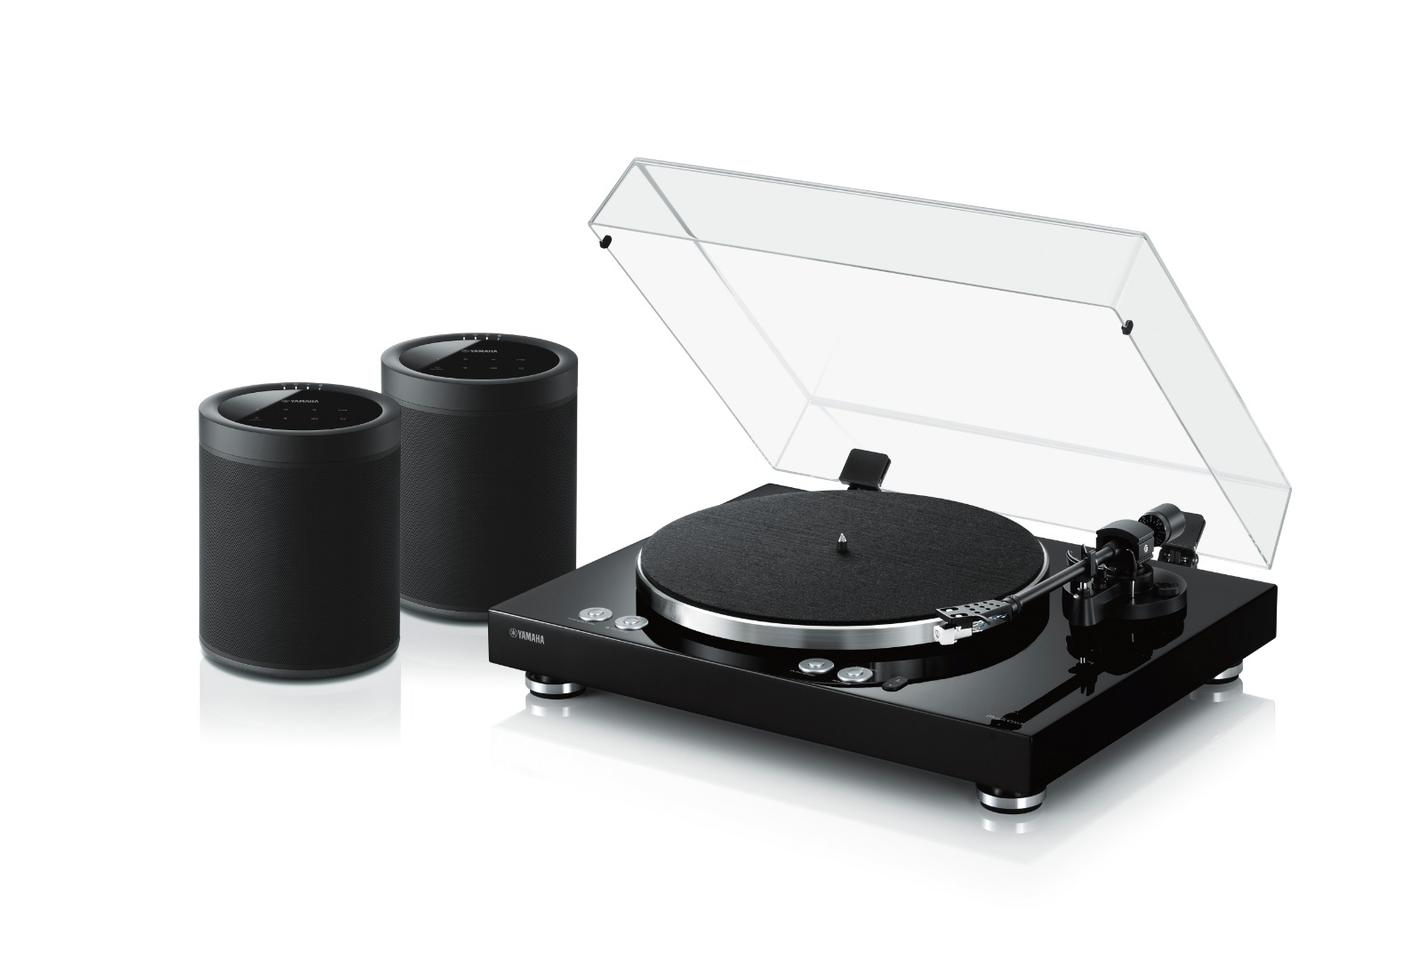 The Vinyl 500 turntable can wirelessly stream to Yamaha's MusicCast speakers